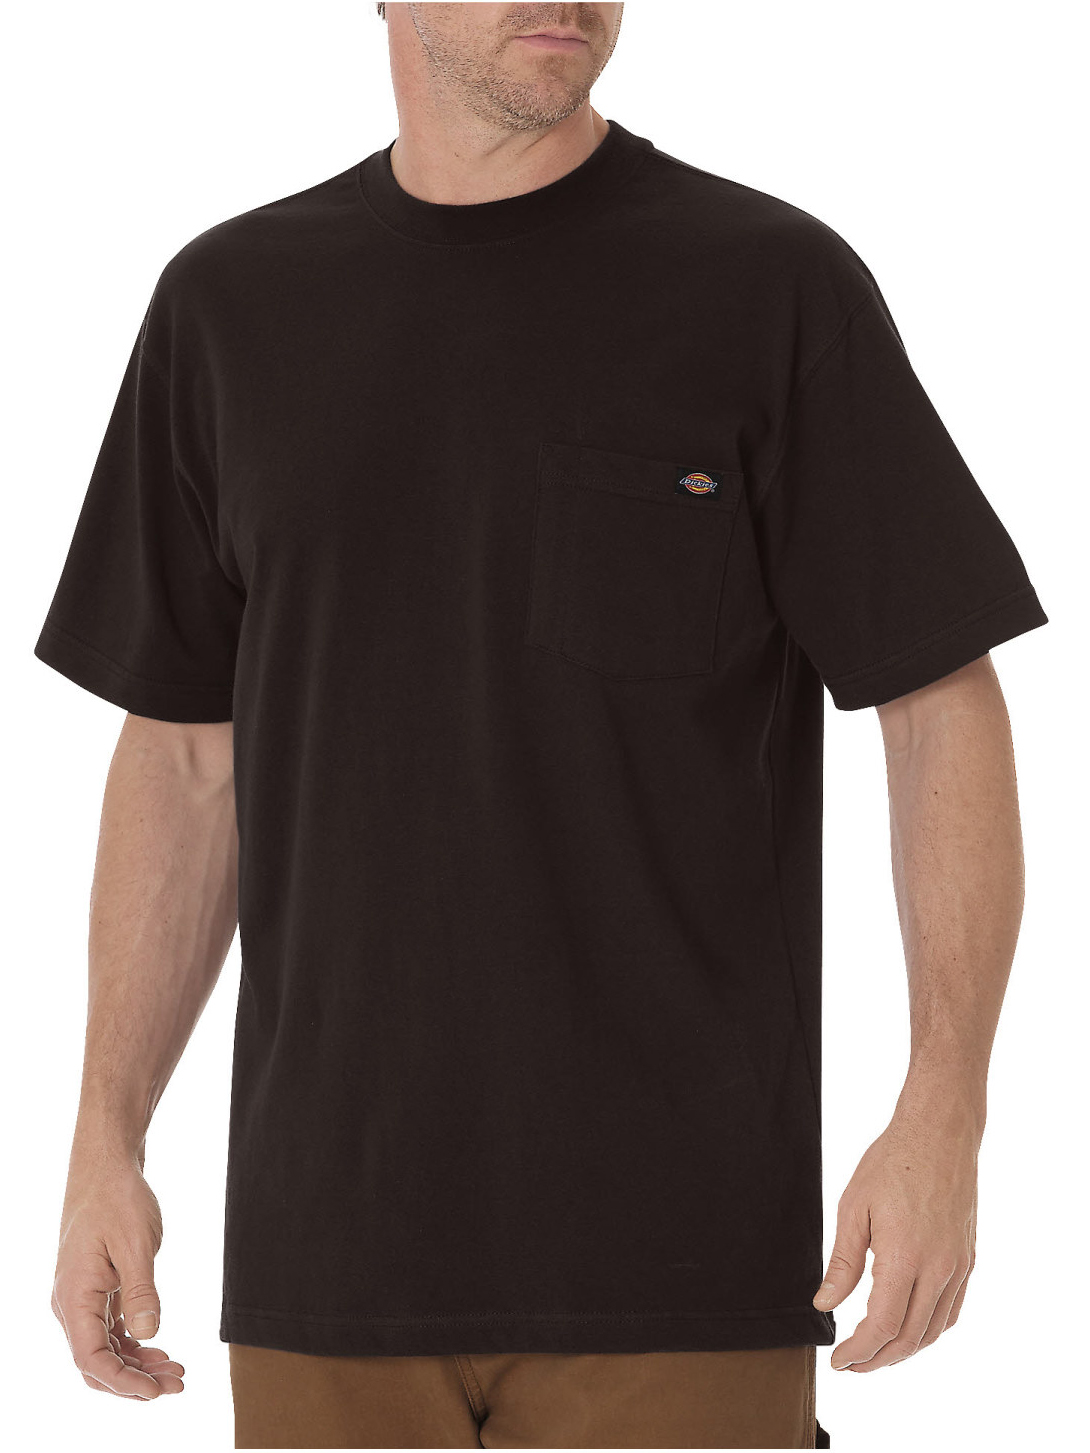 Big and Tall Men's Short Sleeve Heavyweight Crew Neck Tee